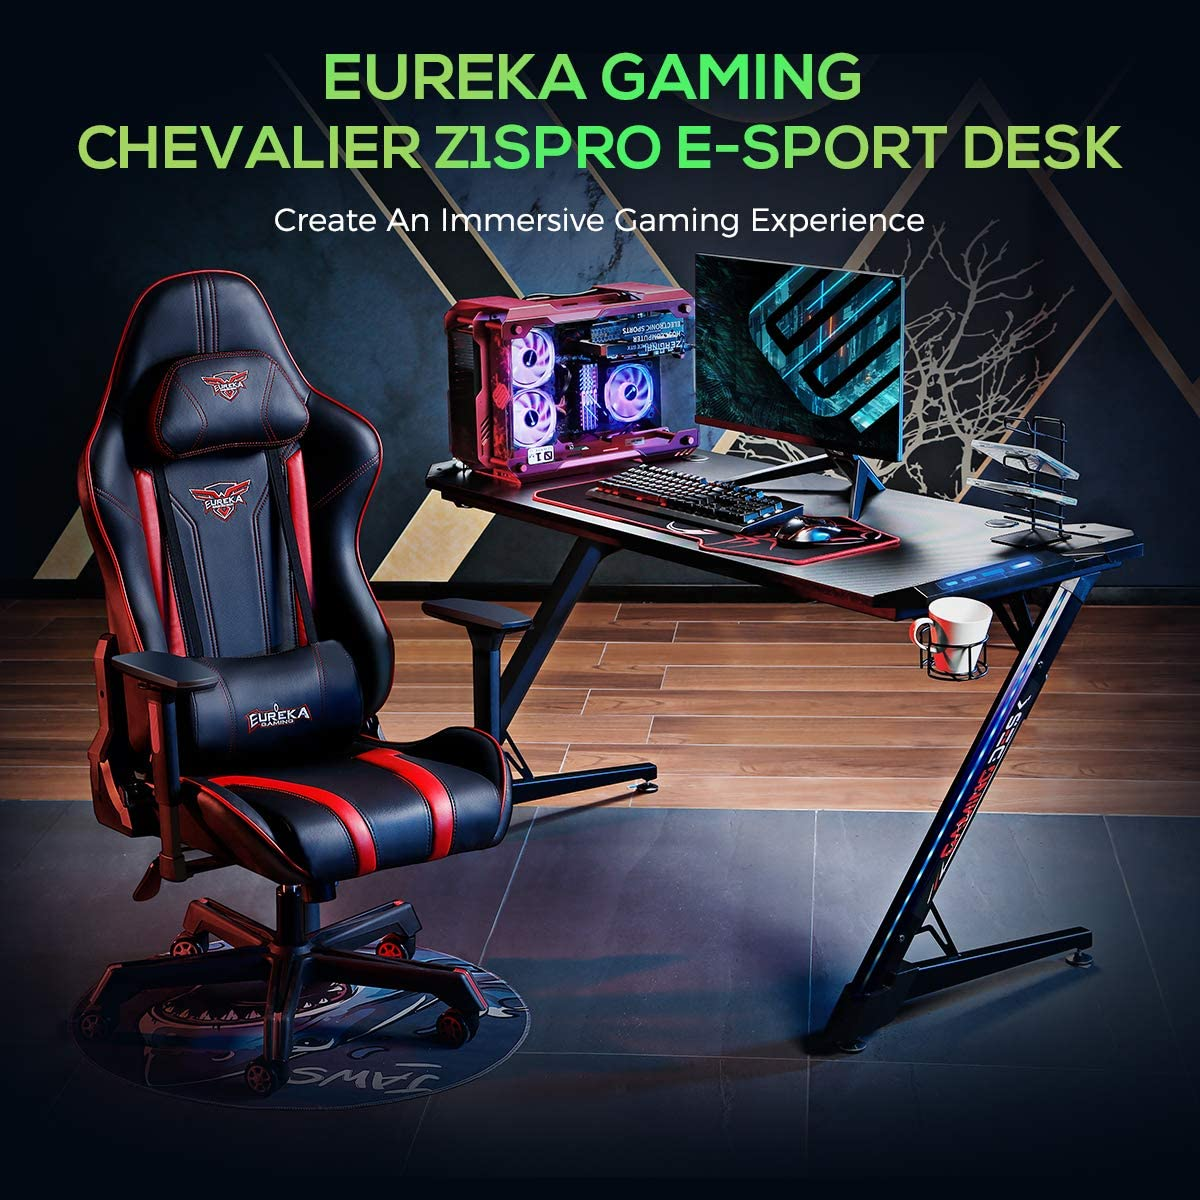 Eureka Ergonomic® Z1S PRO Gaming Computer Desk 43.5 inch Z Shaped Home Office PC Gaming Desks Table with RGB LED Lights with Cup Holder Headset Hook, Black